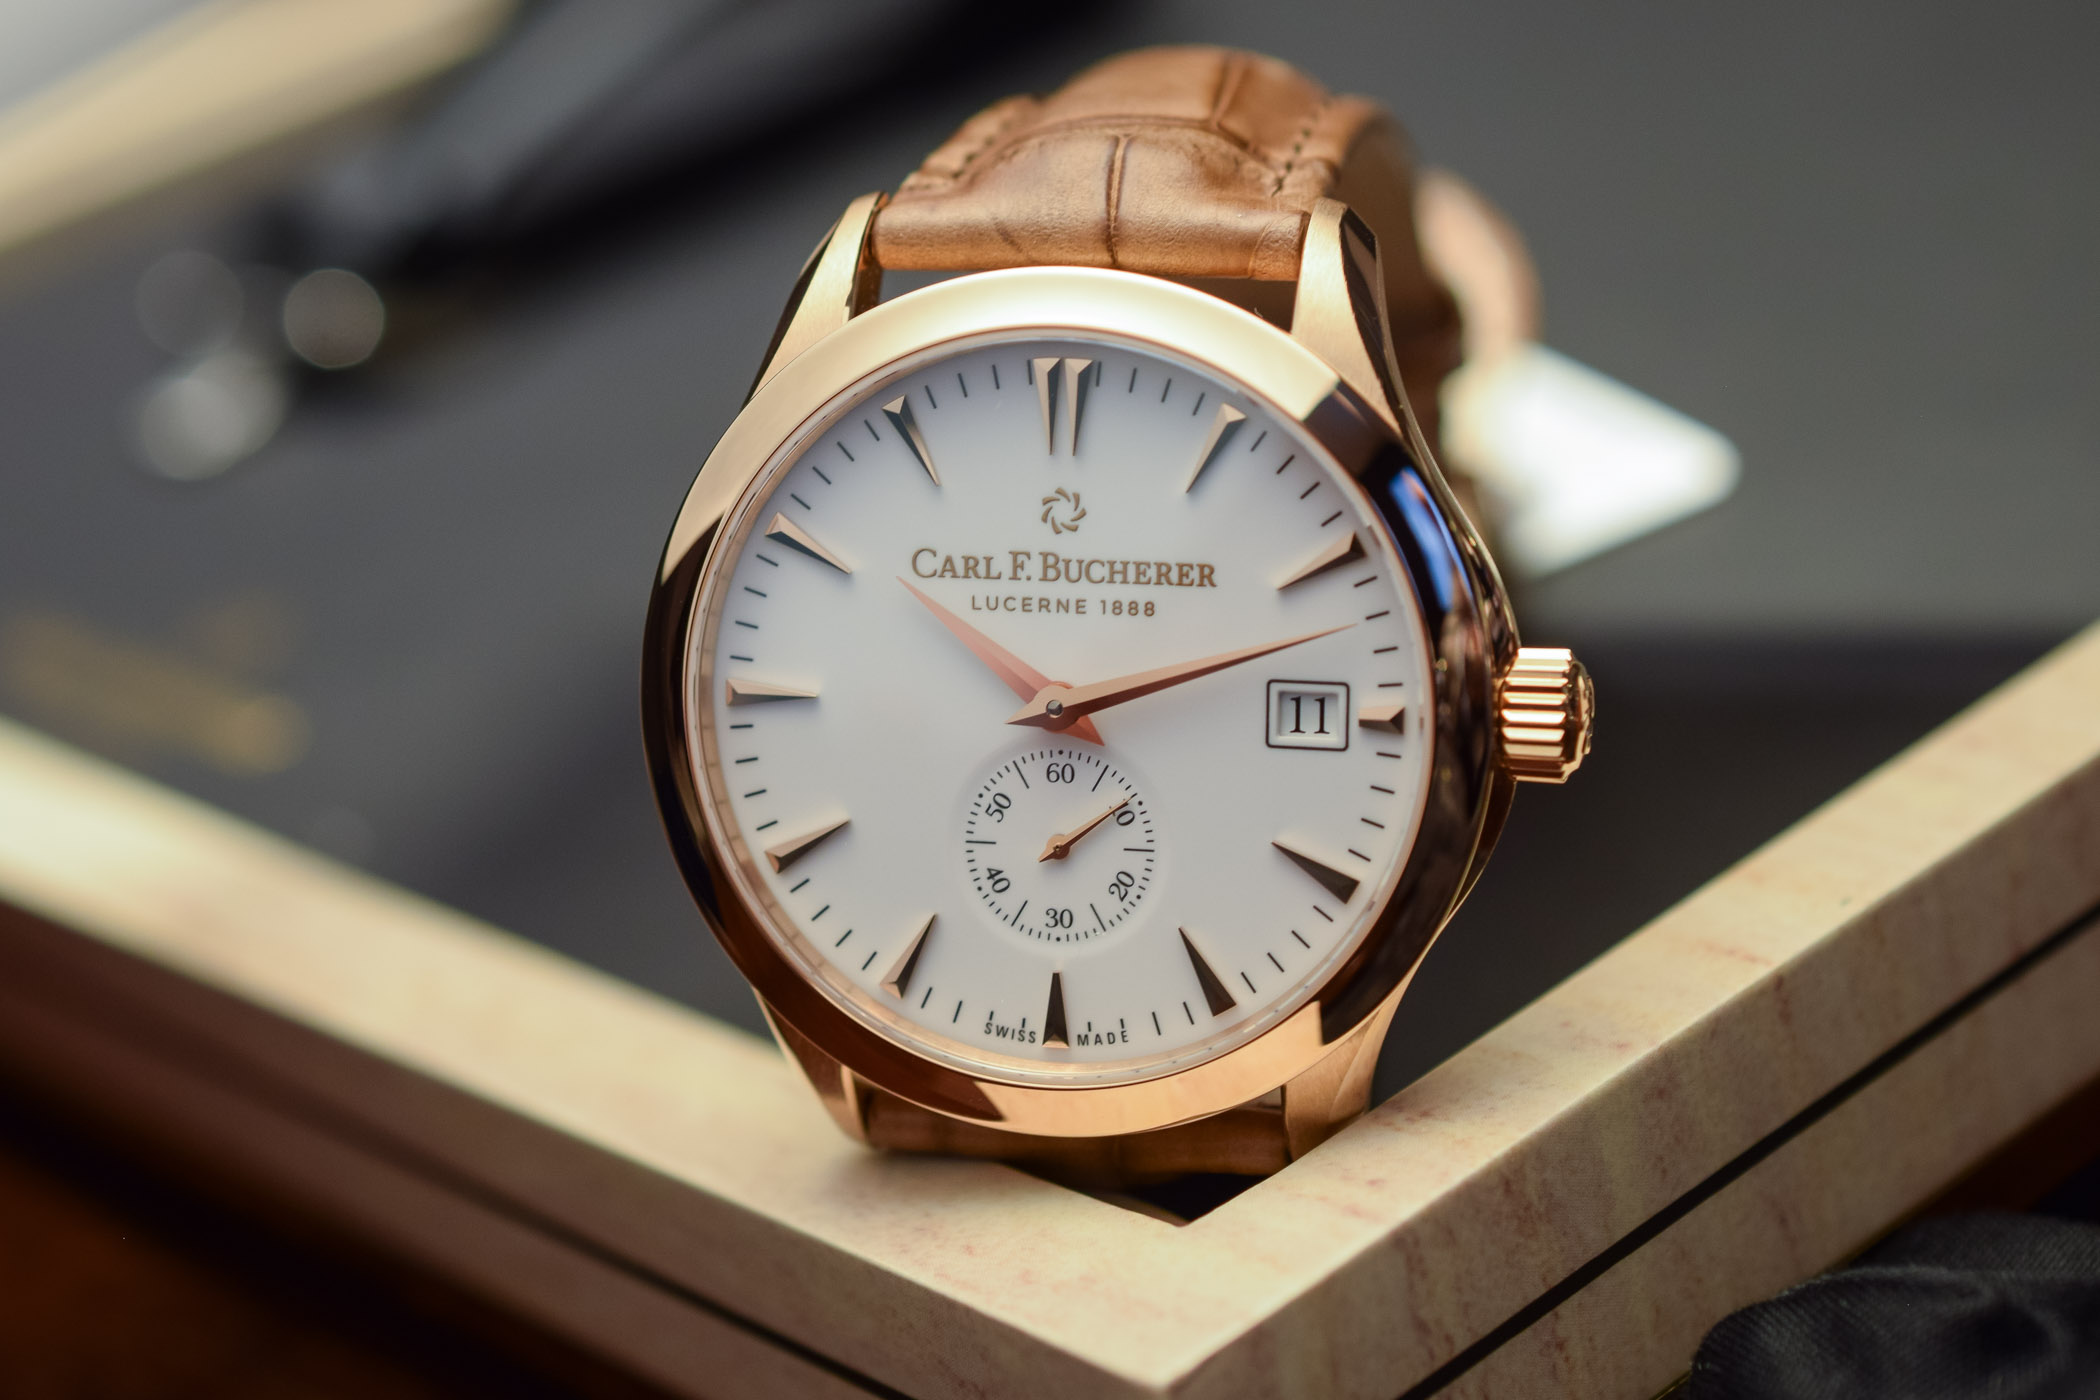 Carl F. Bucherer Manero Peripheral 43mm